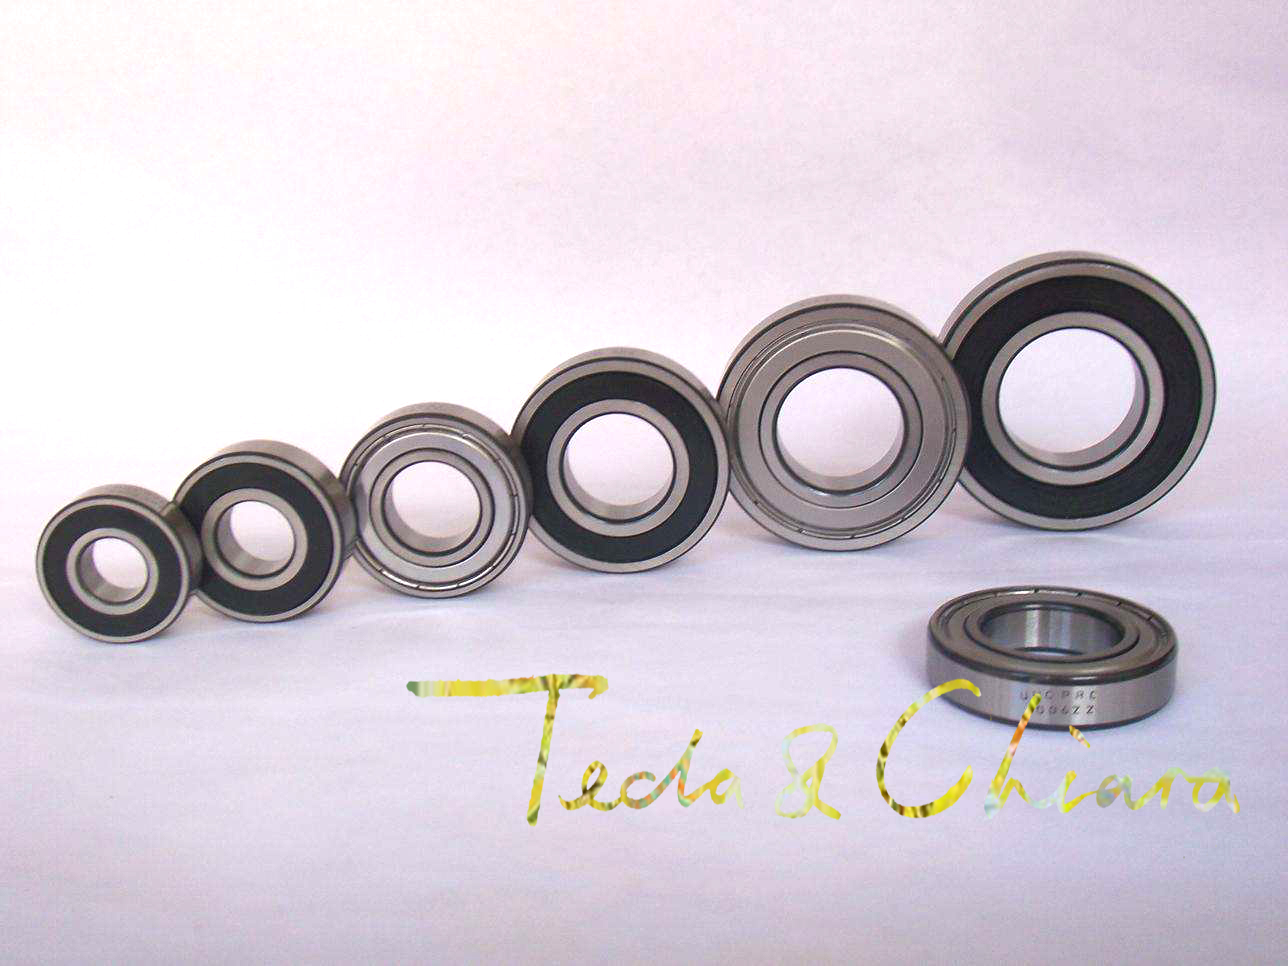 10Pcs 6702 6702ZZ <font><b>6702RS</b></font> 6702-2Z 6702Z 6702-2RS ZZ RS RZ 2RZ Deep Groove Ball Bearings 15 x 21 x 4mm High Quality image